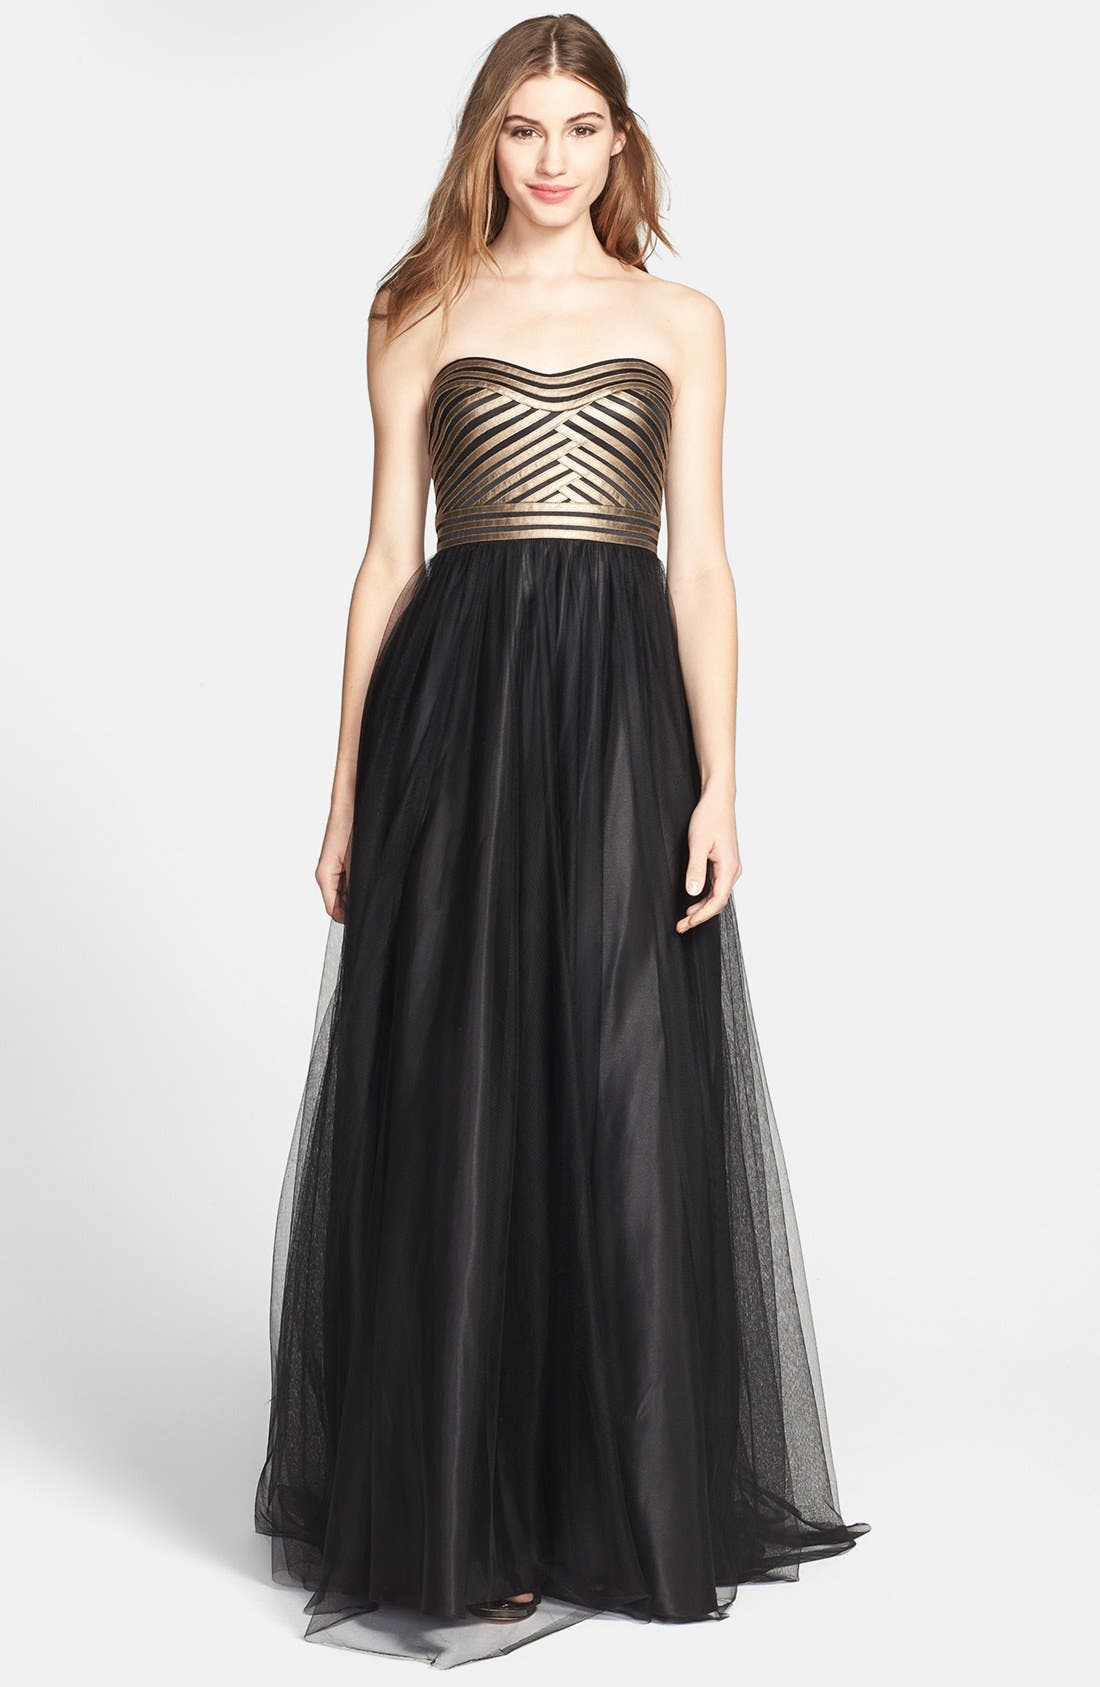 Main Image - Aidan Mattox Strapless Fitted Bodice Mesh Gown